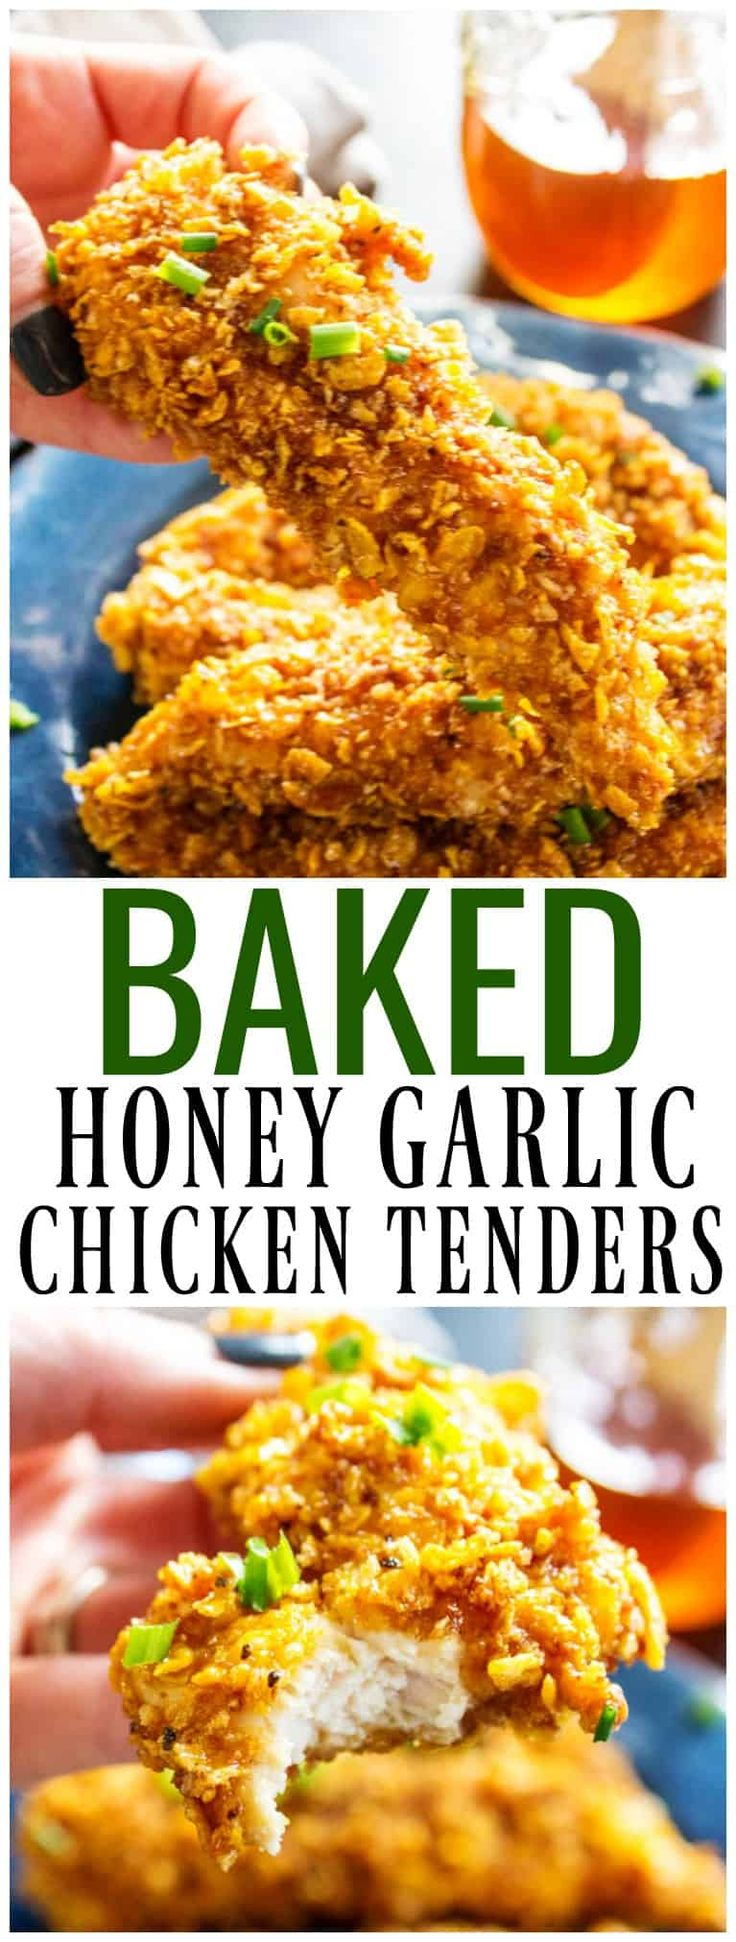 Ready in 30 minutes, baked to perfection and dipped in a simple honey garlic sauce these BAKED HONEY GARLIC CHICKEN TENDERS are out of this world.